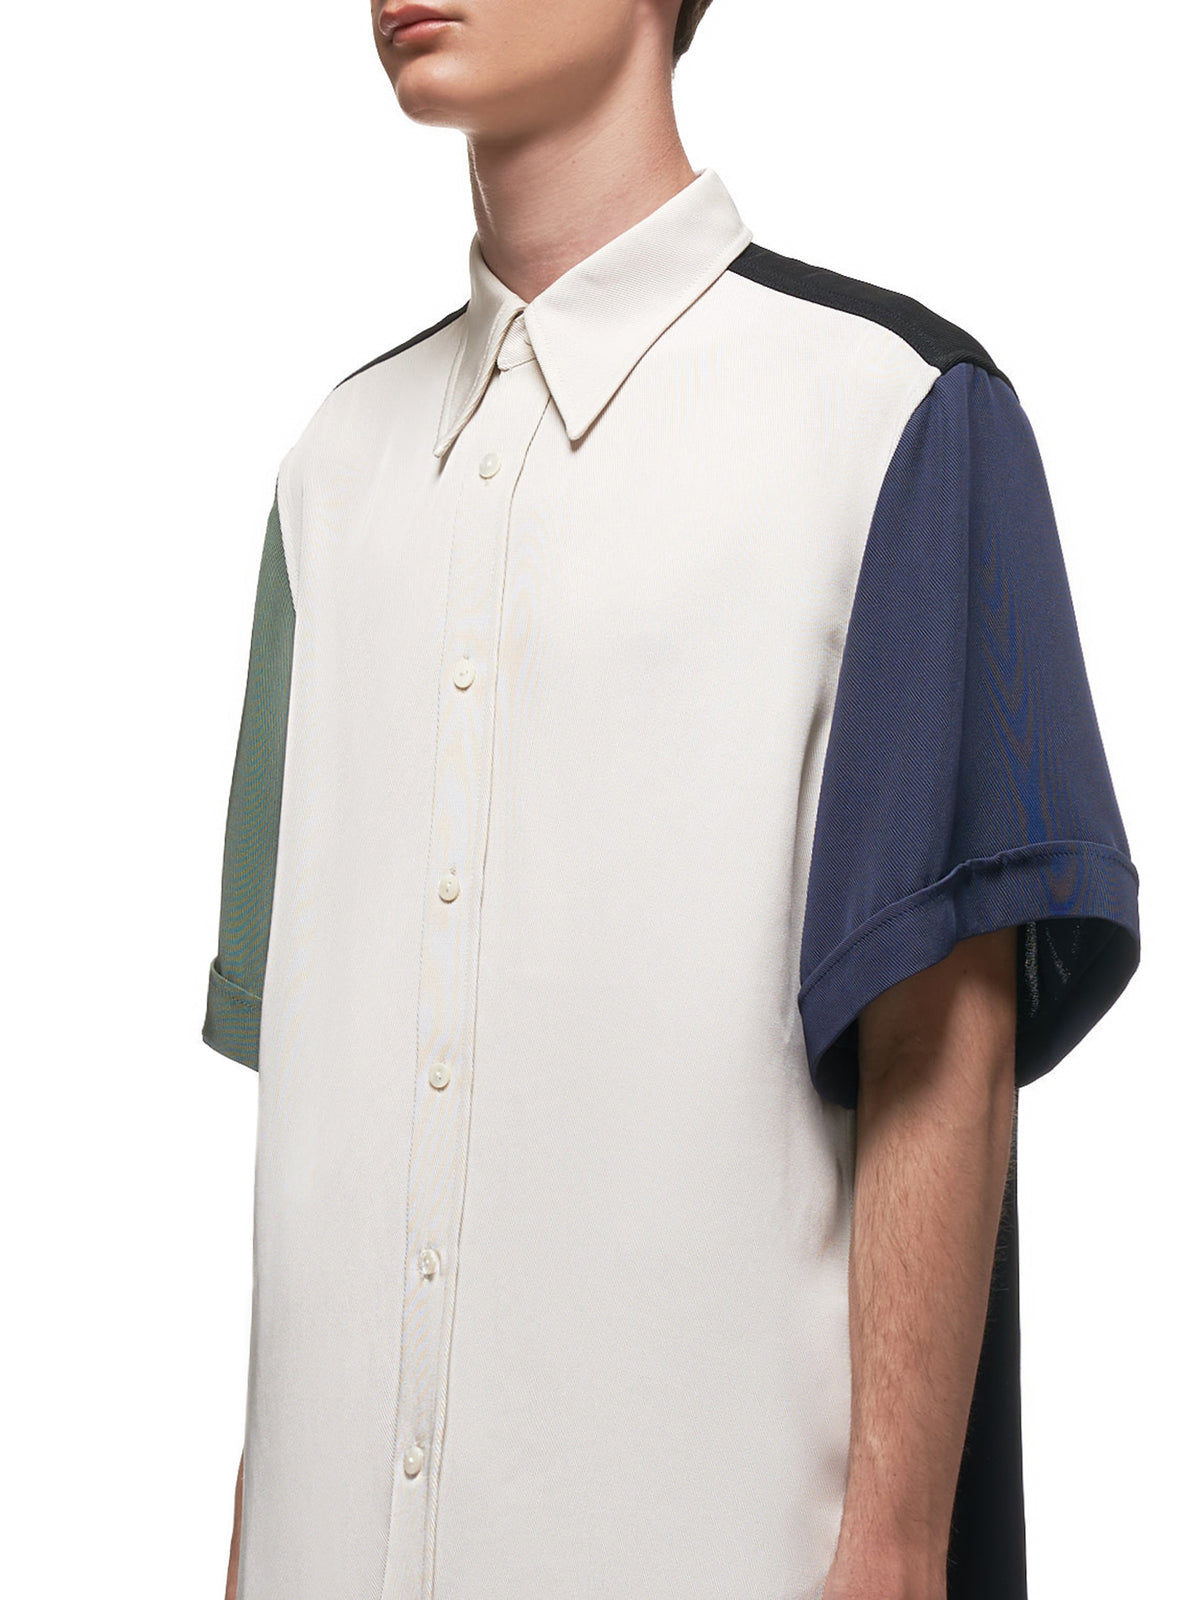 Color Block Panel Cuffed Short Sleeve Shirt (004-02-GREEN-BLUE-BLACK-WHITE)